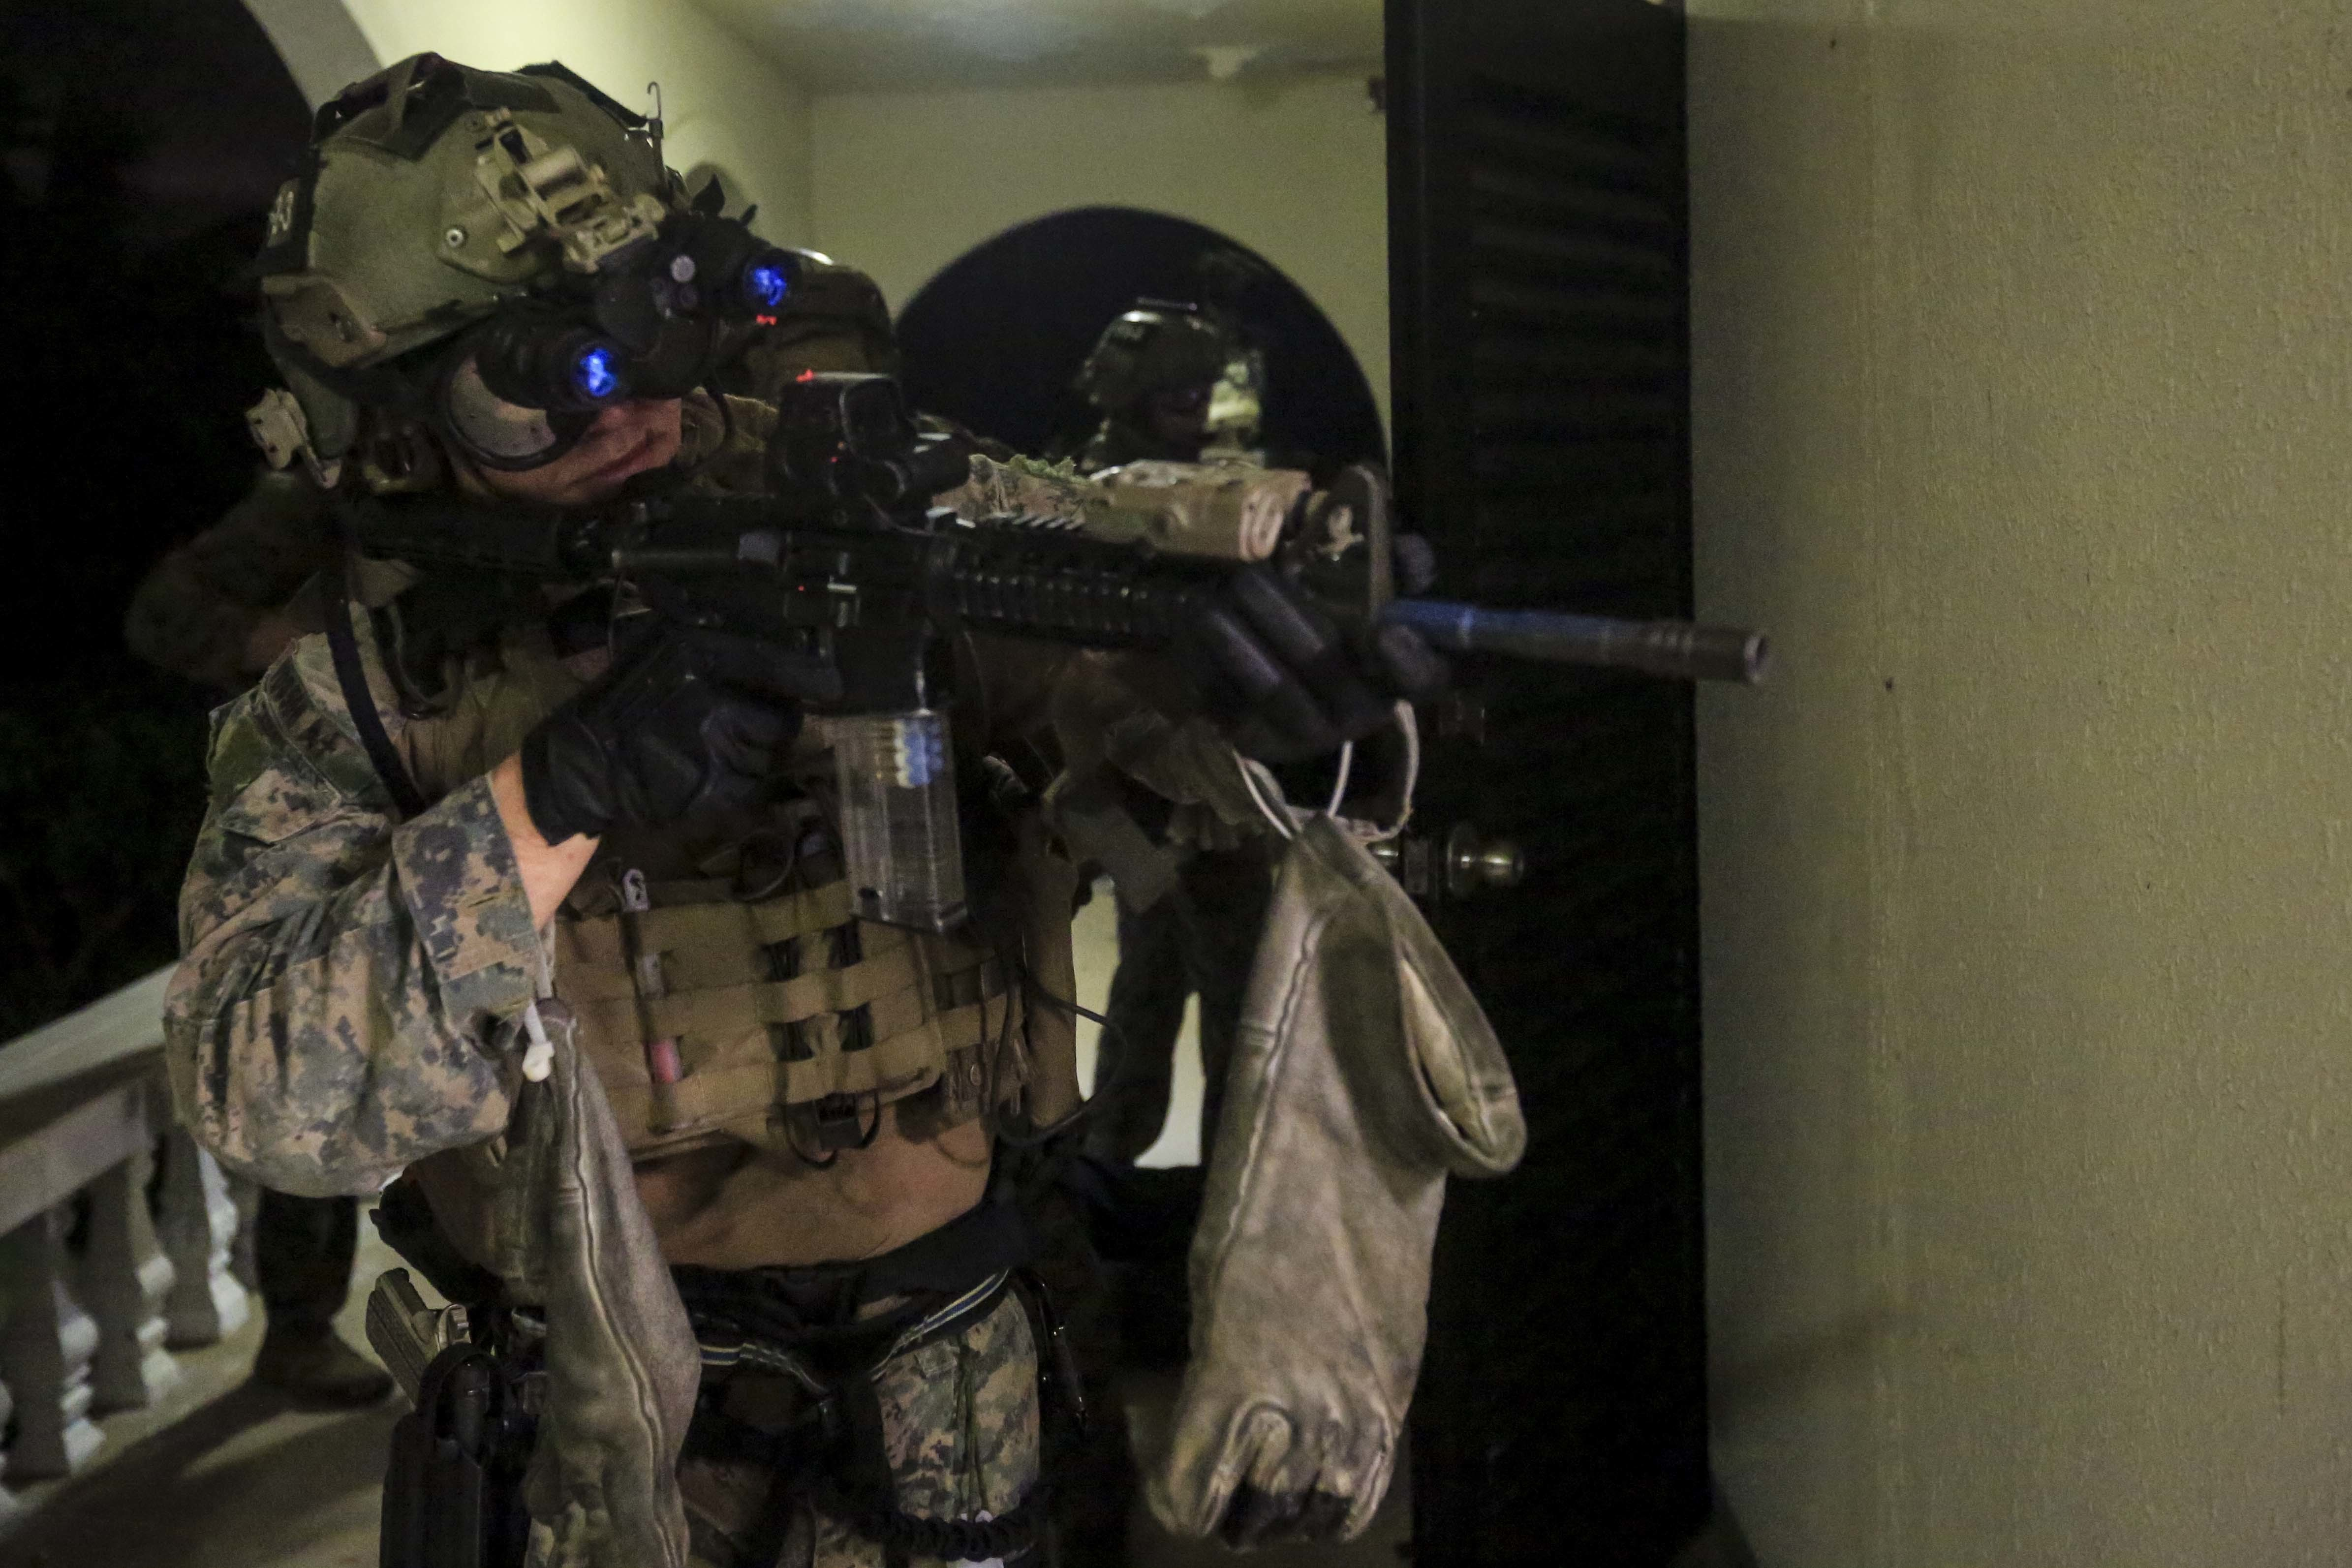 Marines hunt for new thermal and night vision goggles for grunts